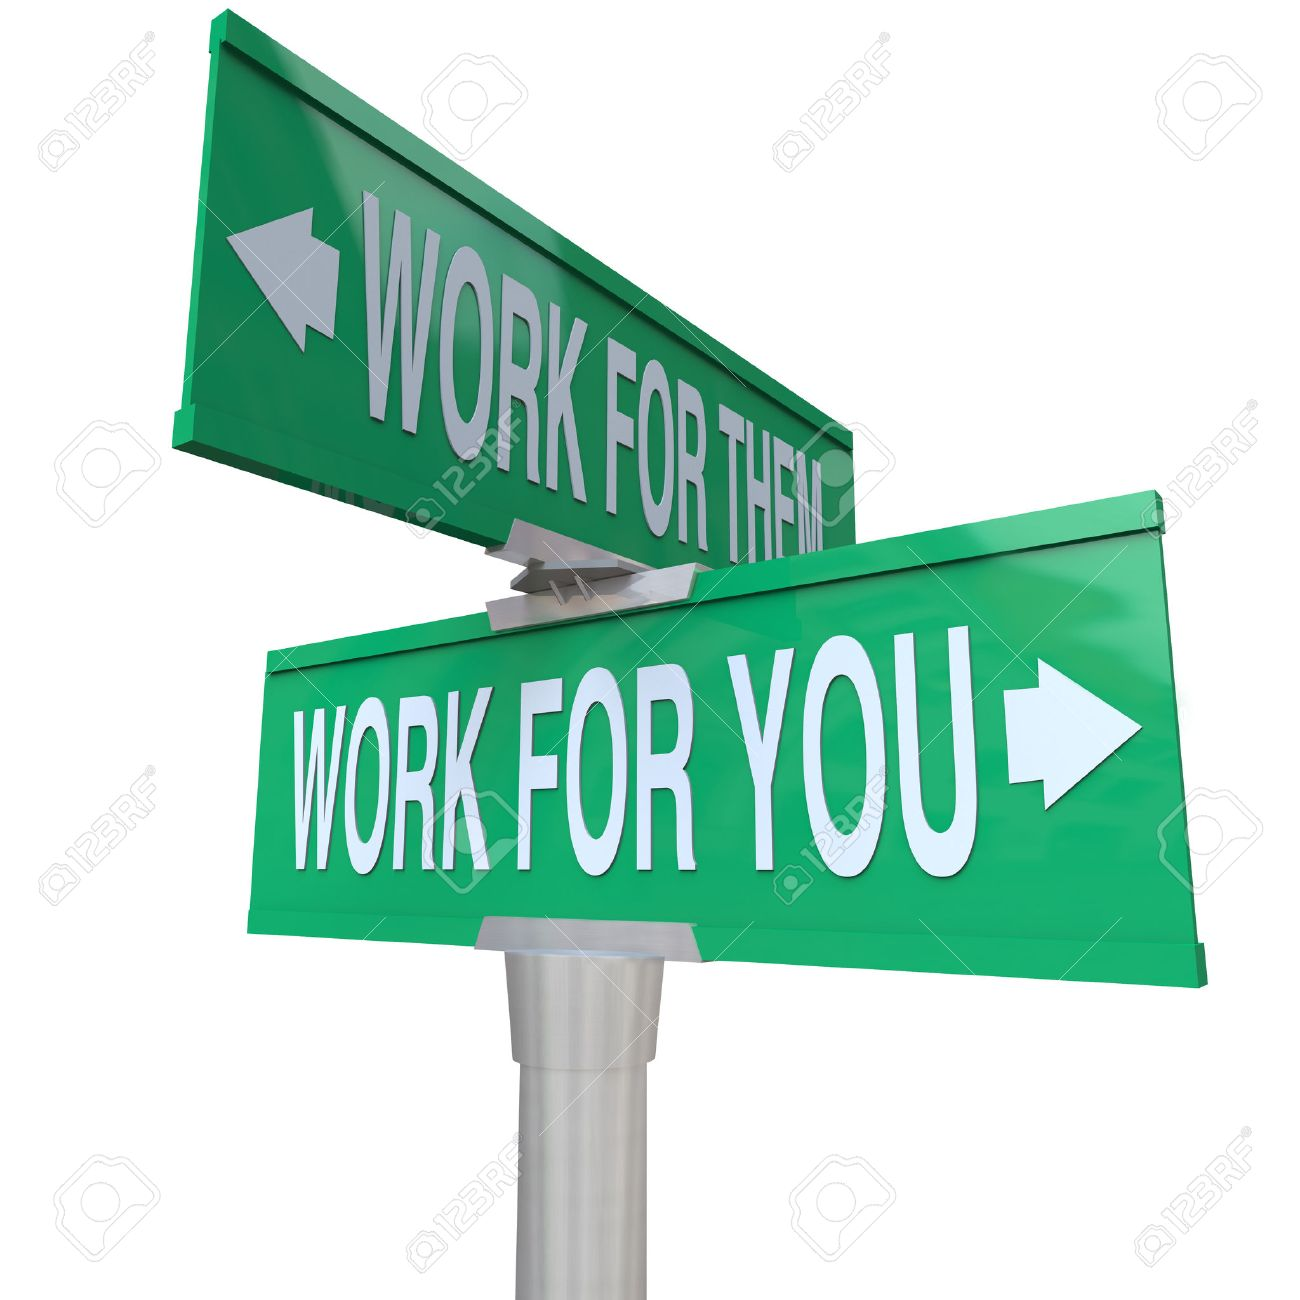 Work for You words on a green road sign vs working for them telling you to start your own new business and become an entrepreneur - 27941416